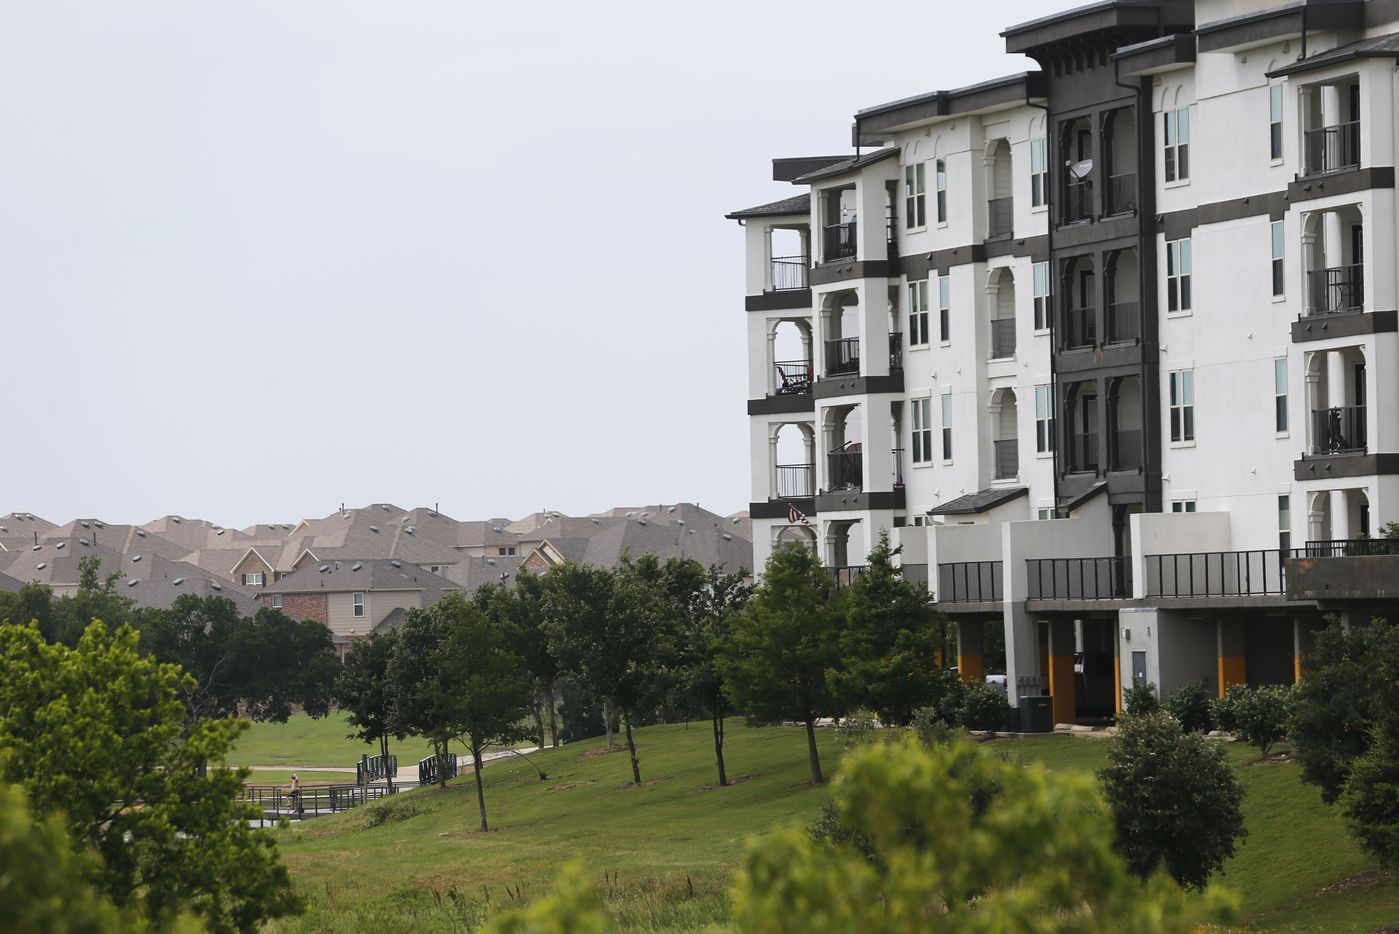 Overlook By The Park apartment complex at the border of Frisco and Little Elm off of FM 423 is seen on the right next to a park and homes in the distance in Little Elm, Texas on Wednesday, May 22, 2019. Little Elm, which had just 3,500 people as of the 2000 Census, surpassed 50,000 residents in 2018. (Vernon Bryant/The Dallas Morning News)